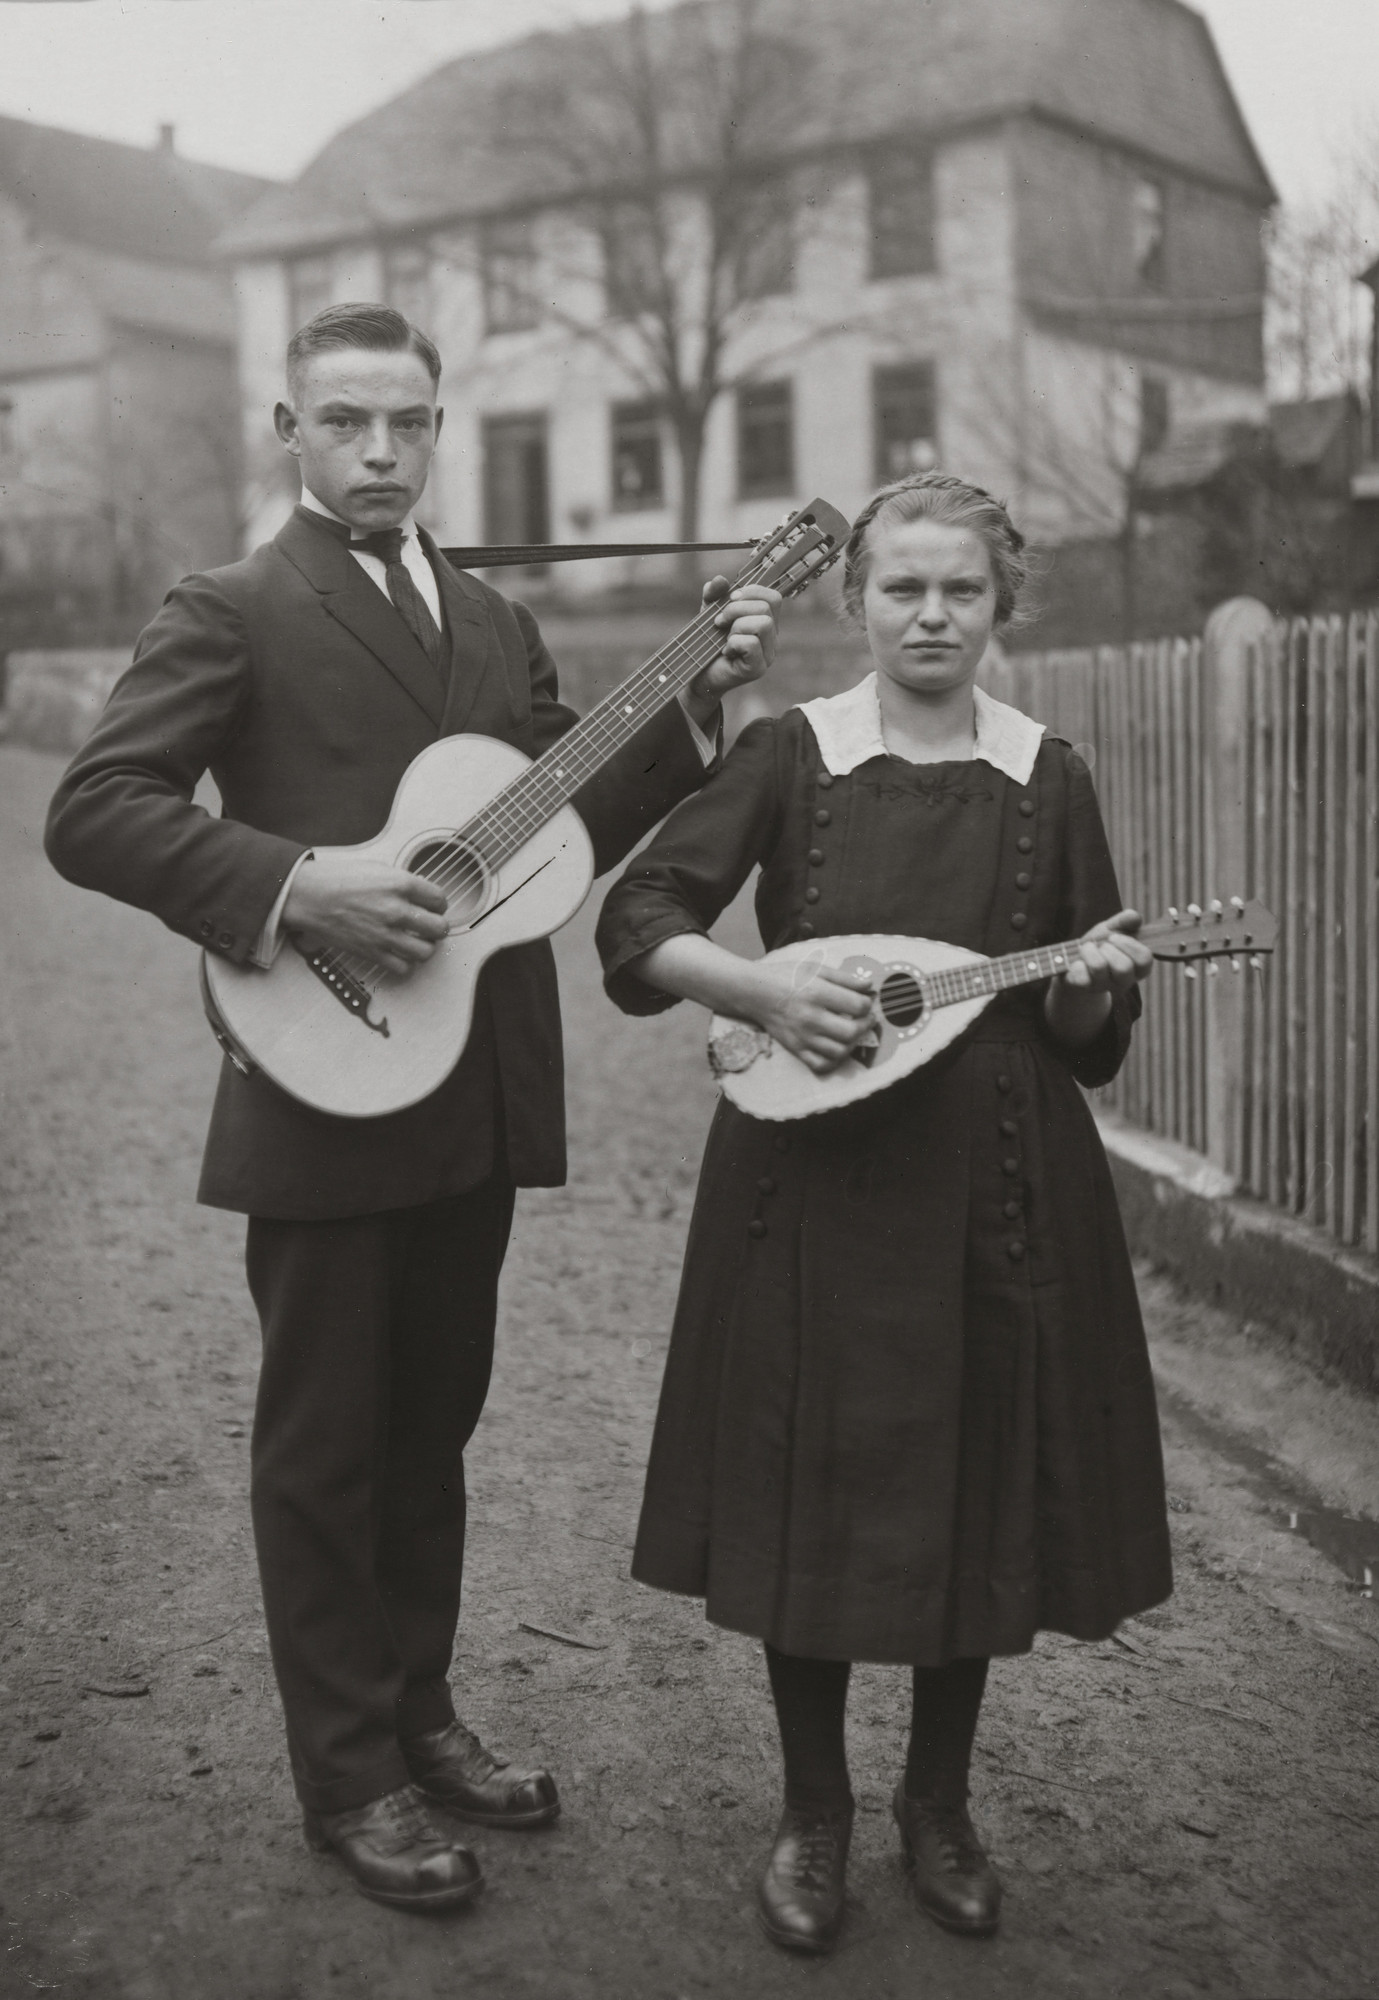 August Sander. Rural Brother and Sister. 1925-30